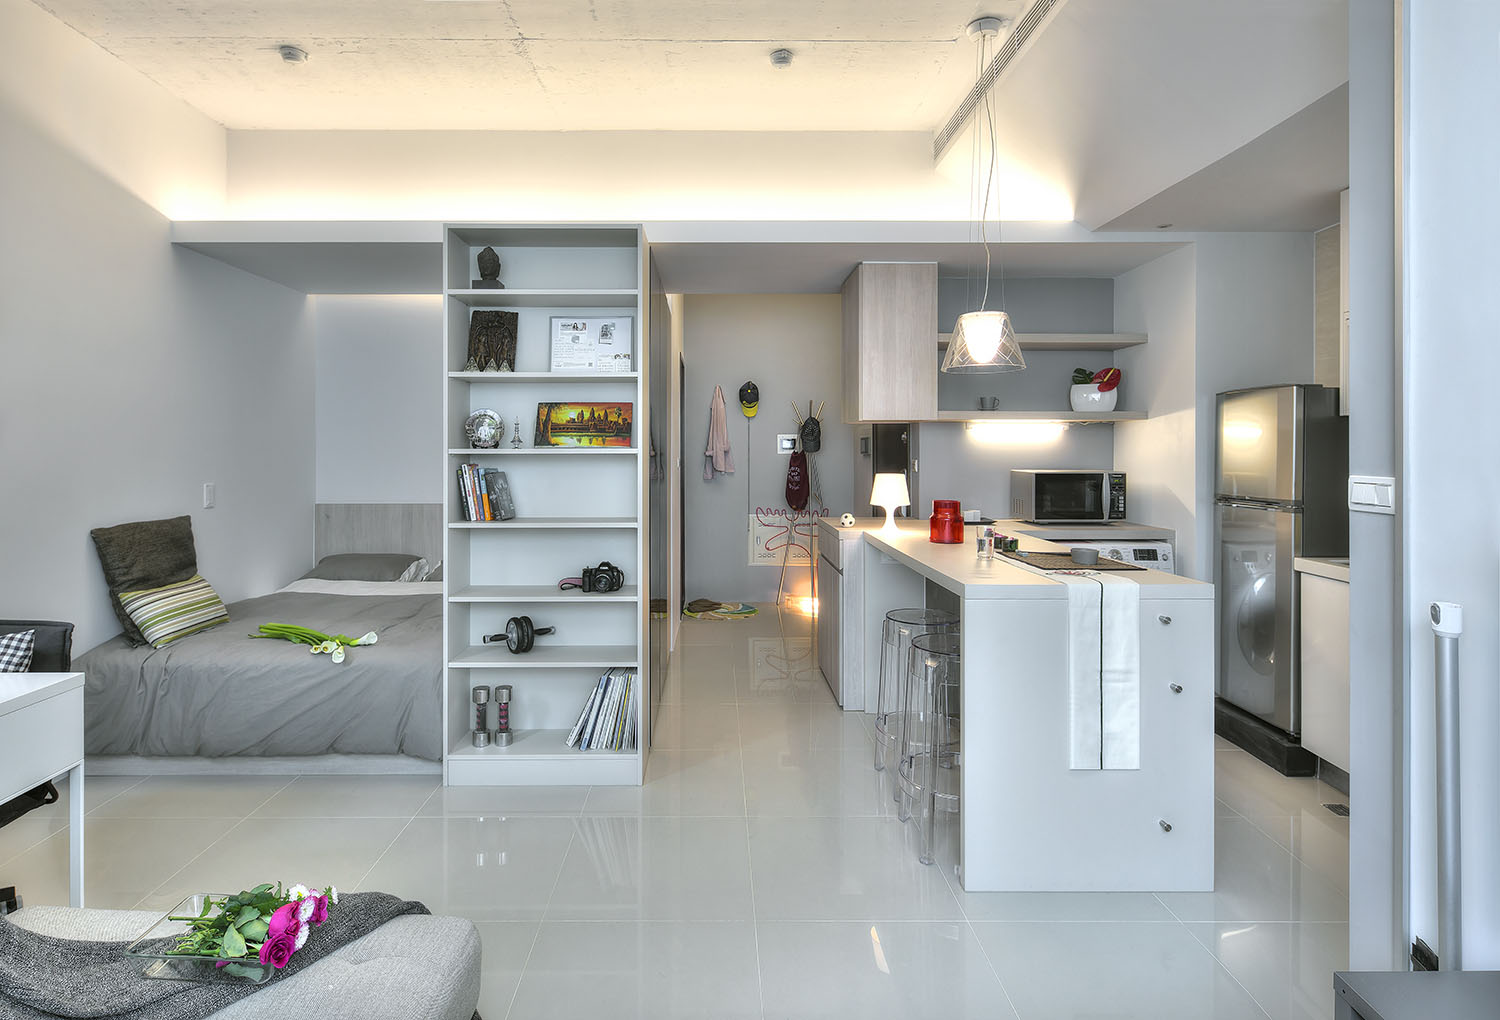 new taipei city studio apartment featured at idesignarch